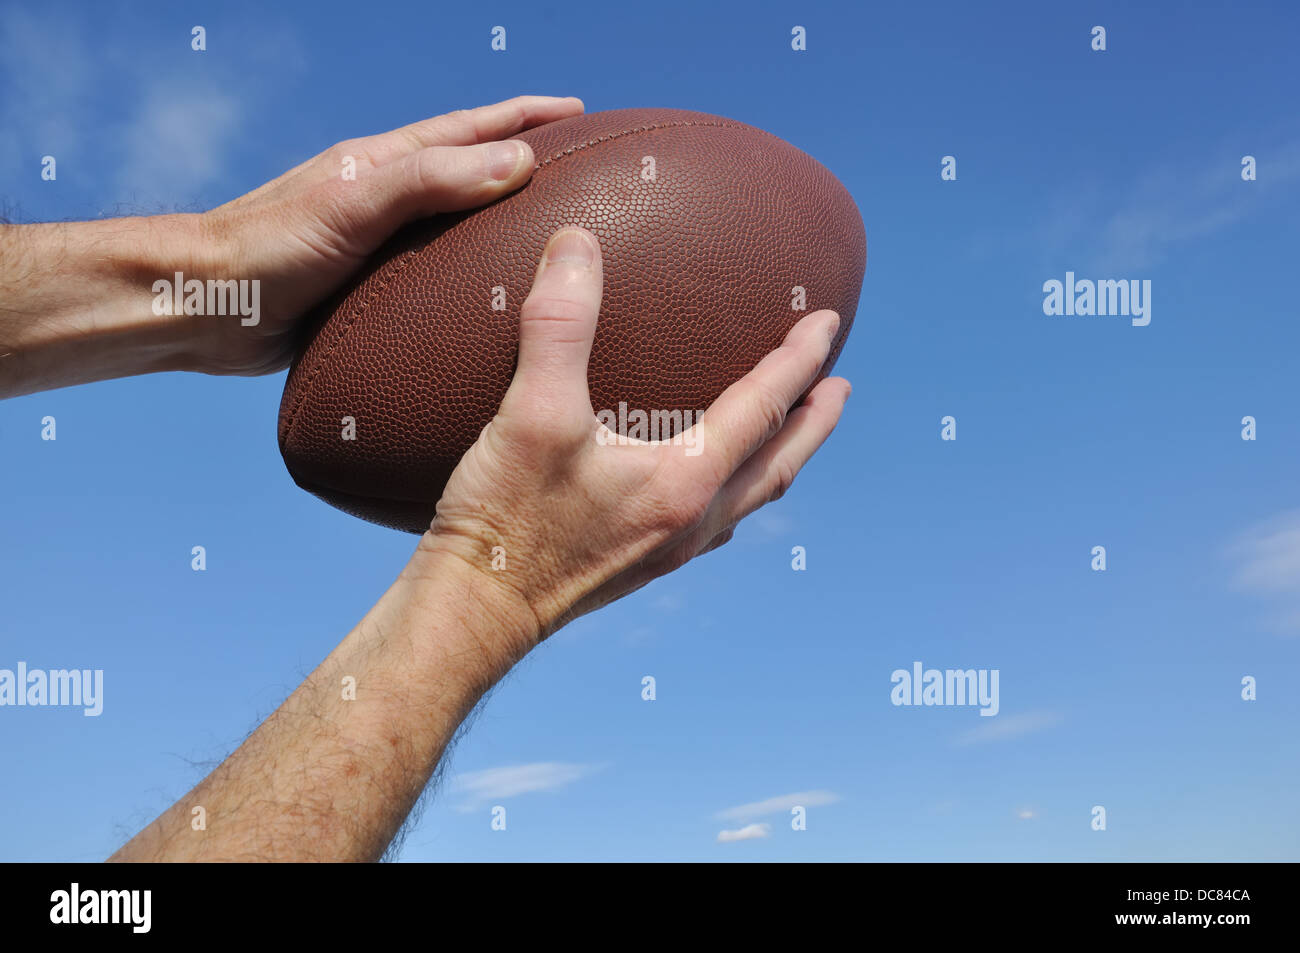 Catching / catcher / receiver holding an American football - Stock Image